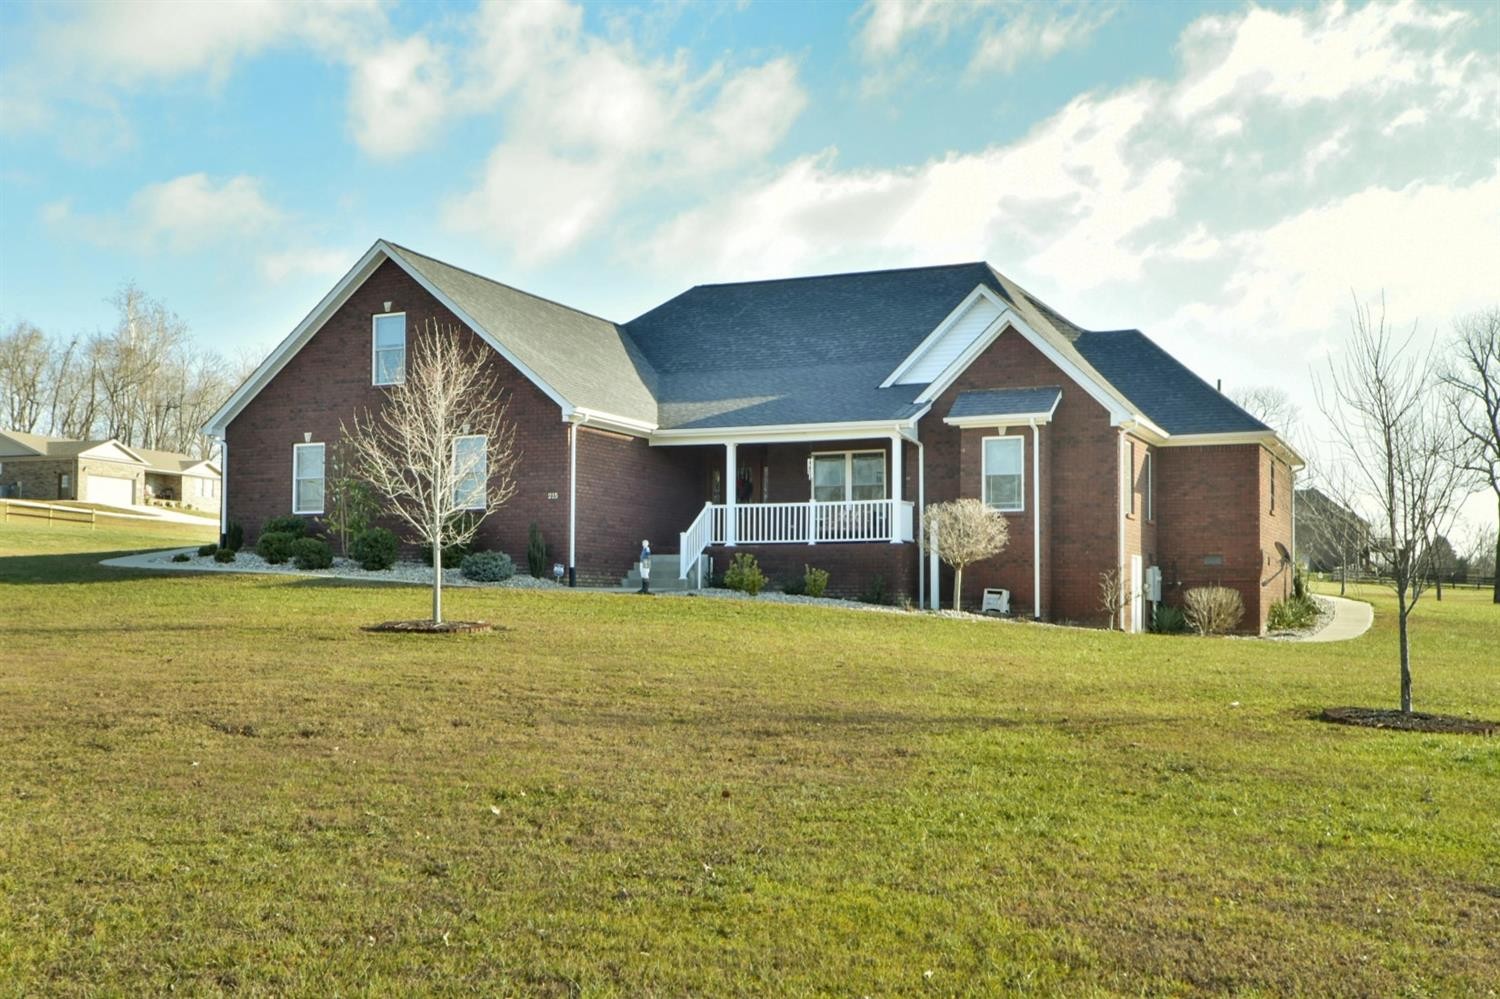 Home For Sale at 232 Waco Hgts, Waco, KY 40385